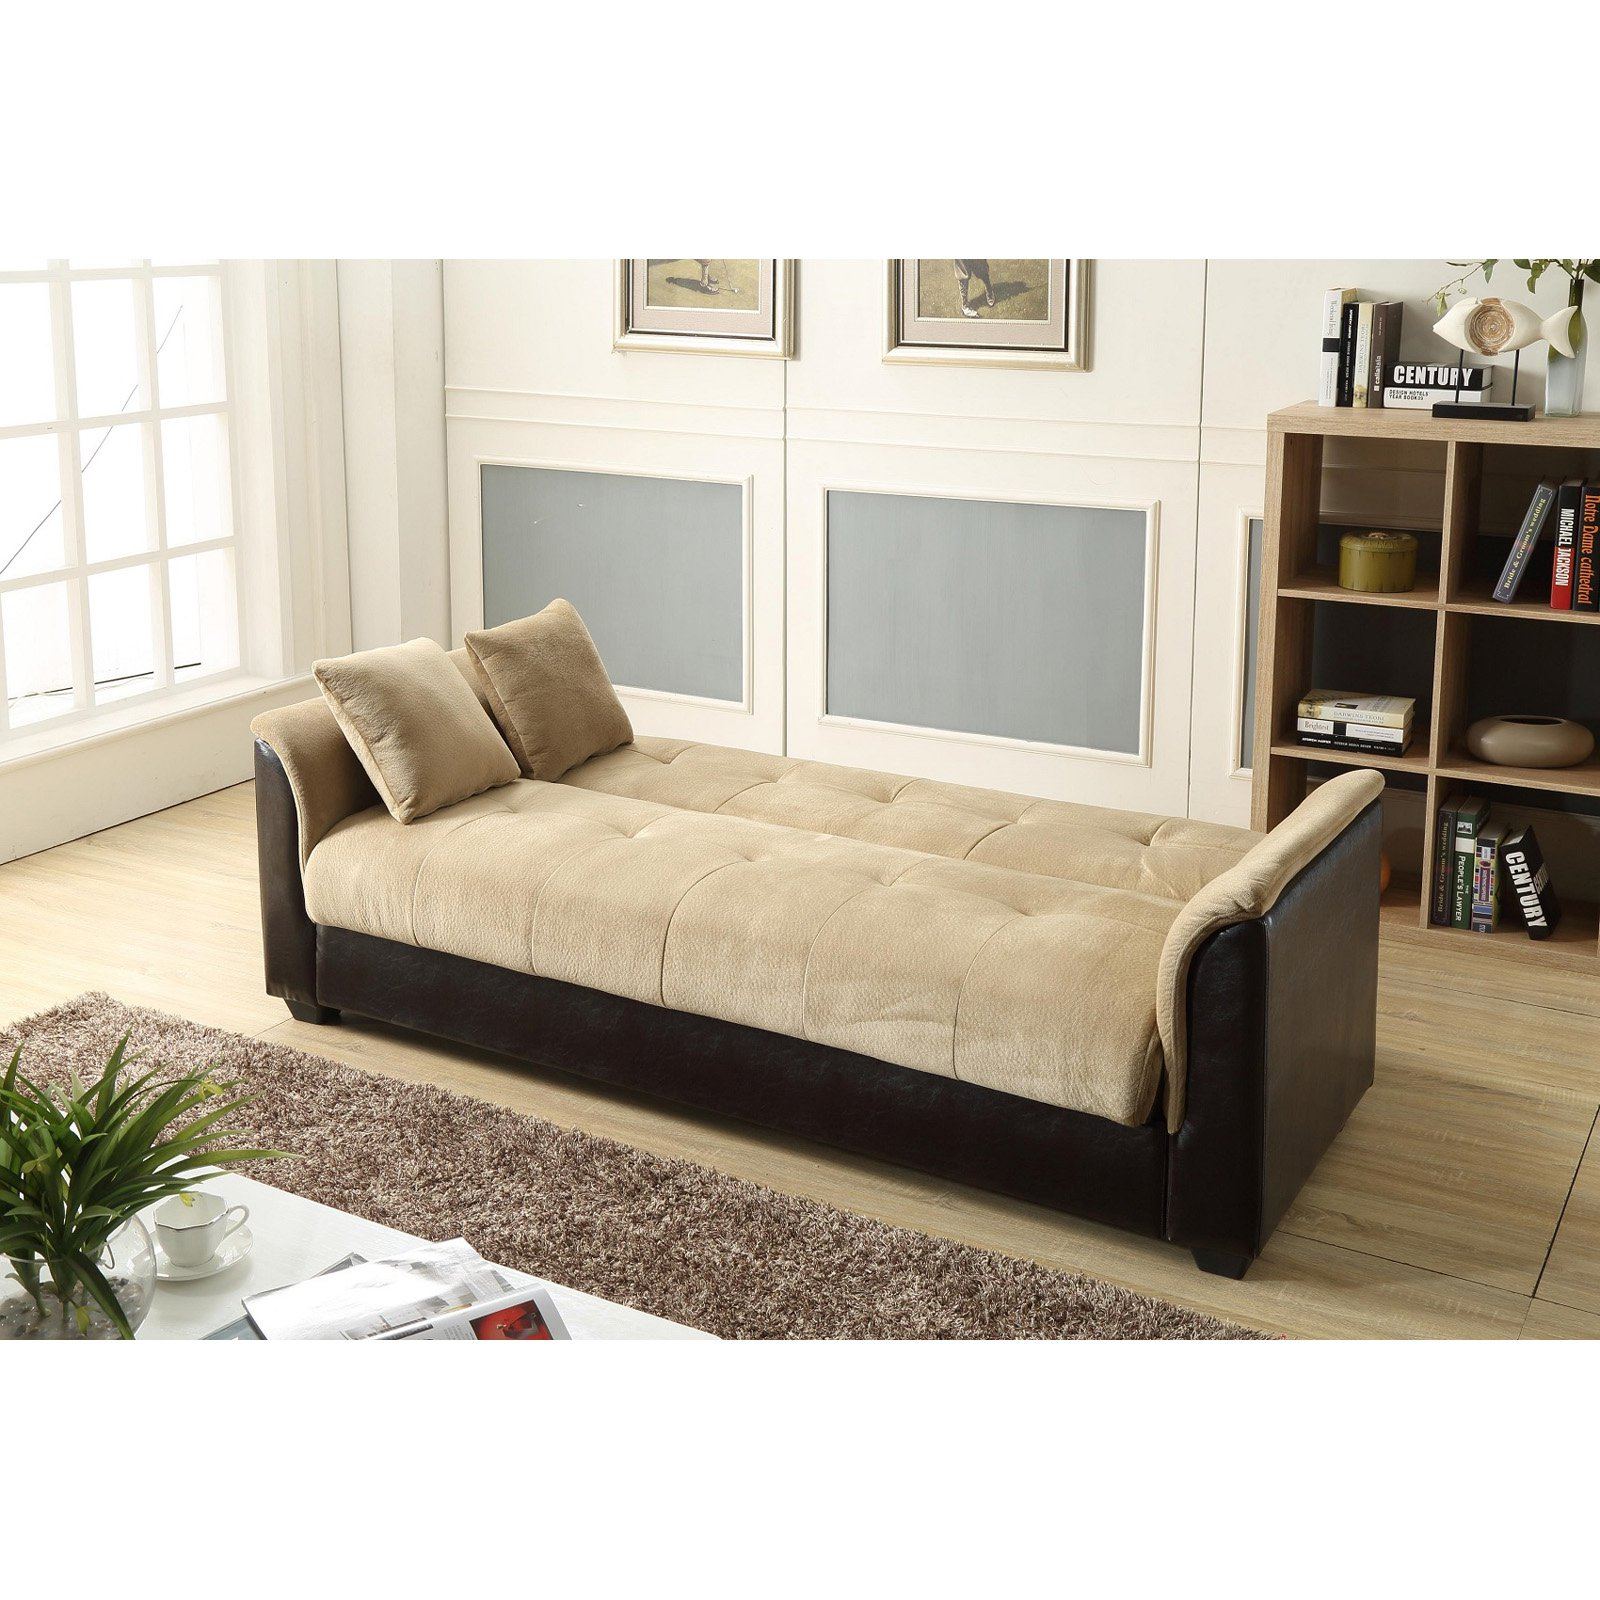 NH Designs Champion Futon Sofa Bed with Storage